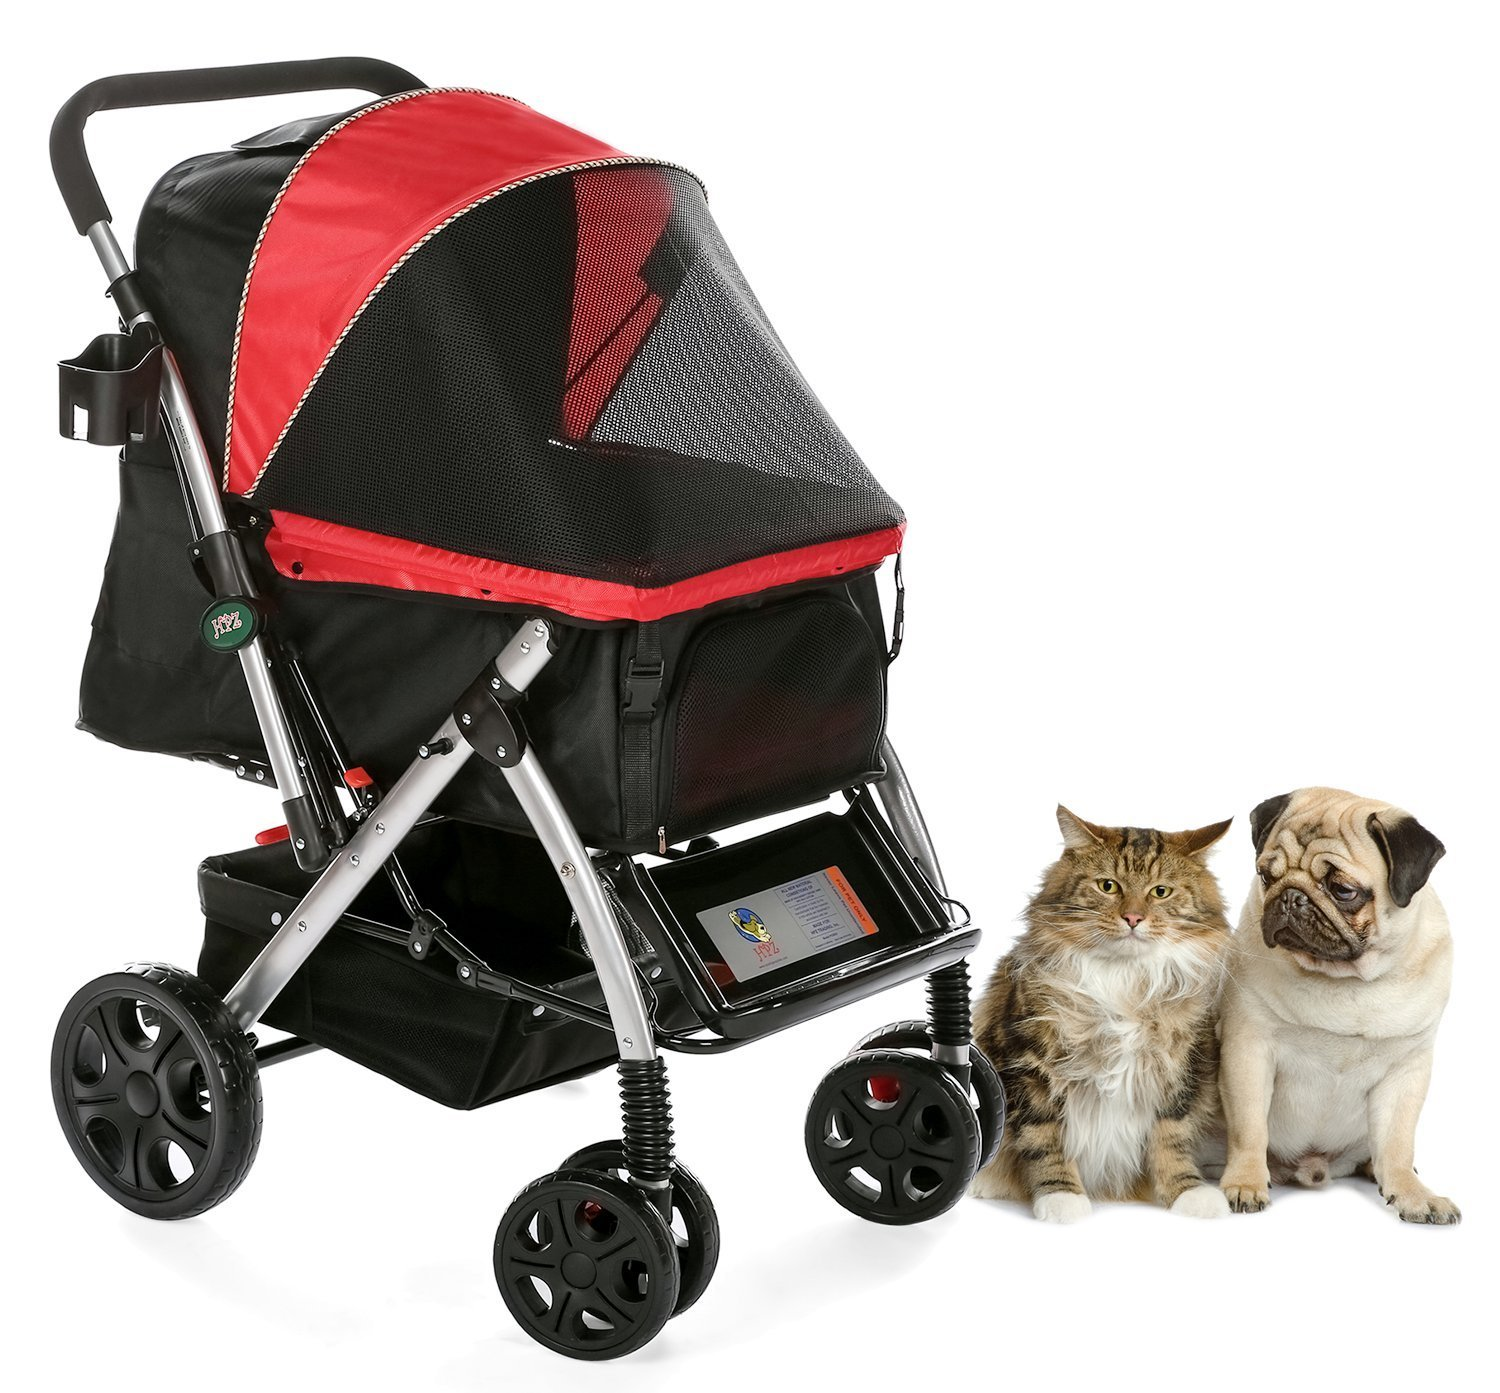 HPZ Pet Rover Premium Heavy Duty Dog/Cat/Pet Stroller Travel Carriage With Convertible Compartment/Zipperless Entry/Reversible Handle Bar/Weather Resistance for Small, Medium and Large Pets - RED